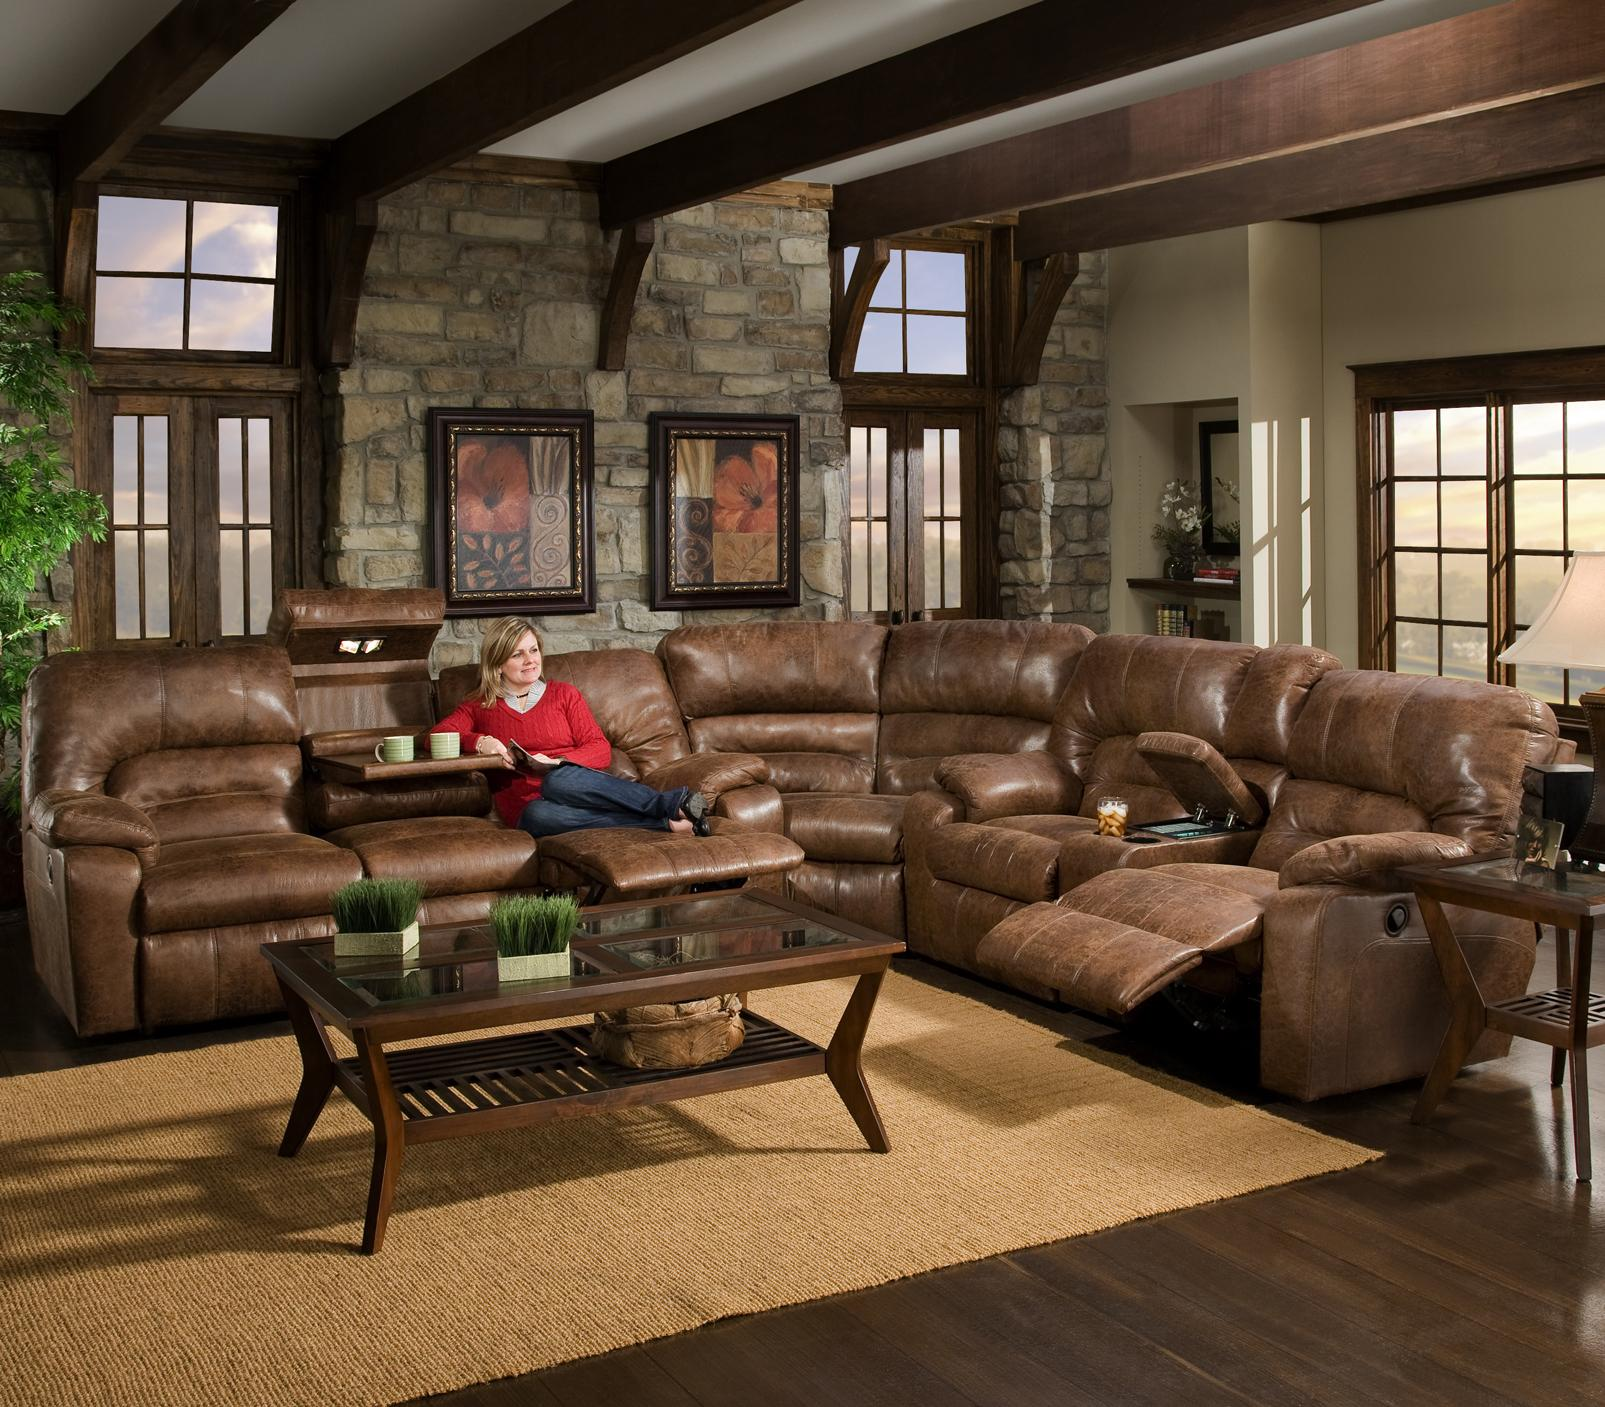 596 3 Piece Motion Sectional with Storage u0026 Lights by Franklin : motion sectional - Sectionals, Sofas & Couches